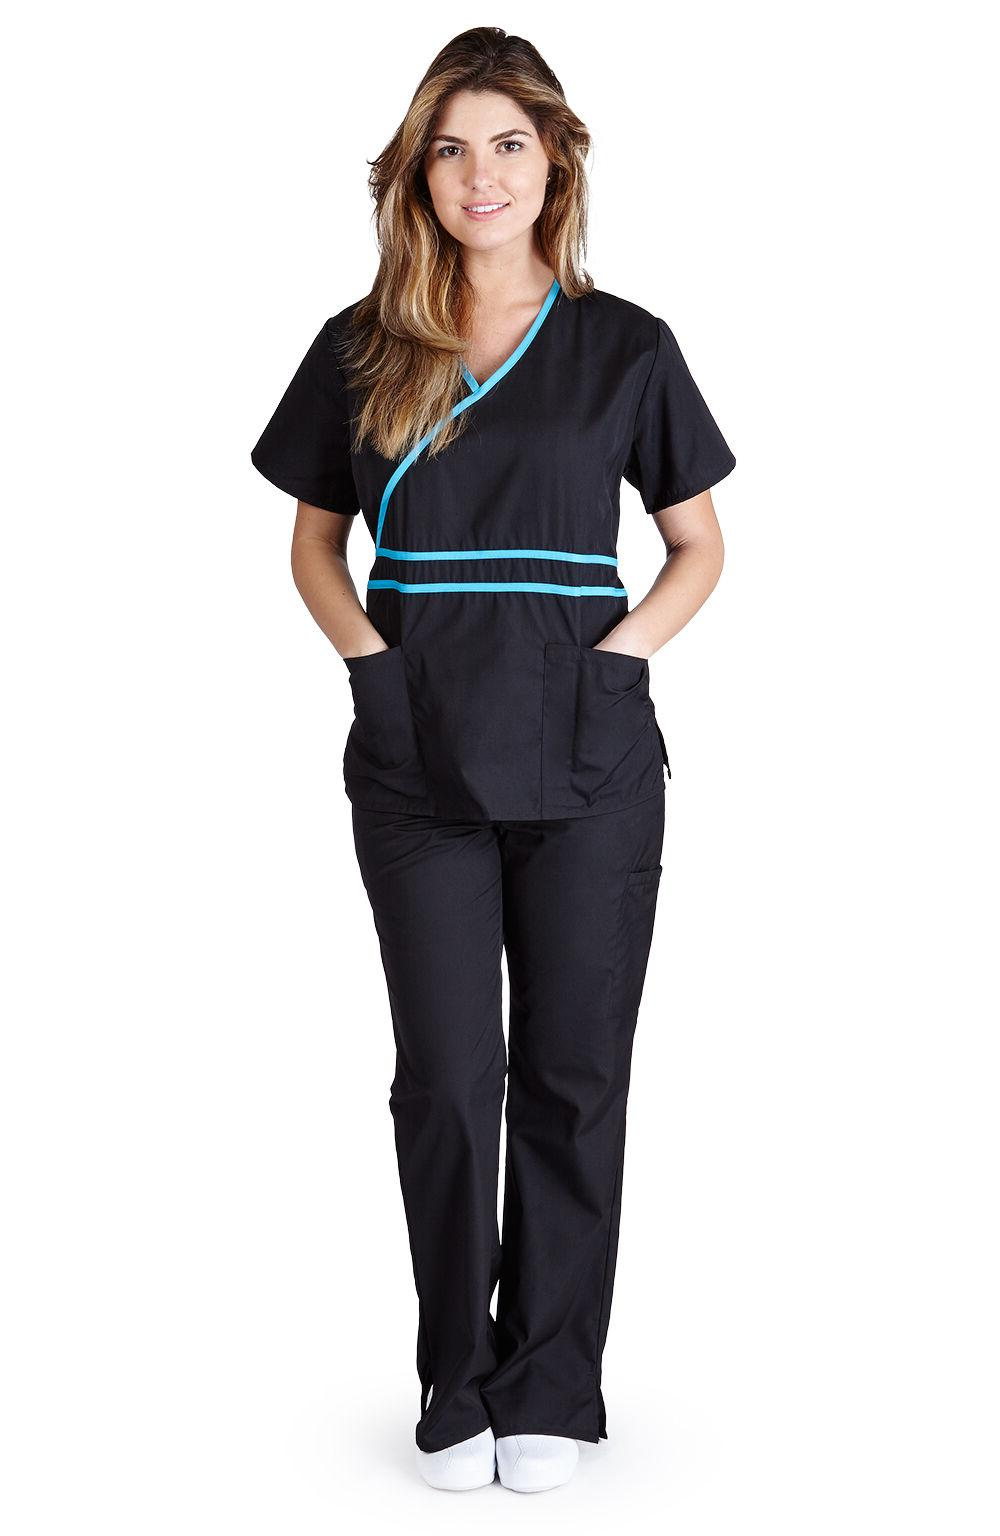 Medical Nurse Scrubs UNIFORMS Mock Set Size S M L XL 2XL